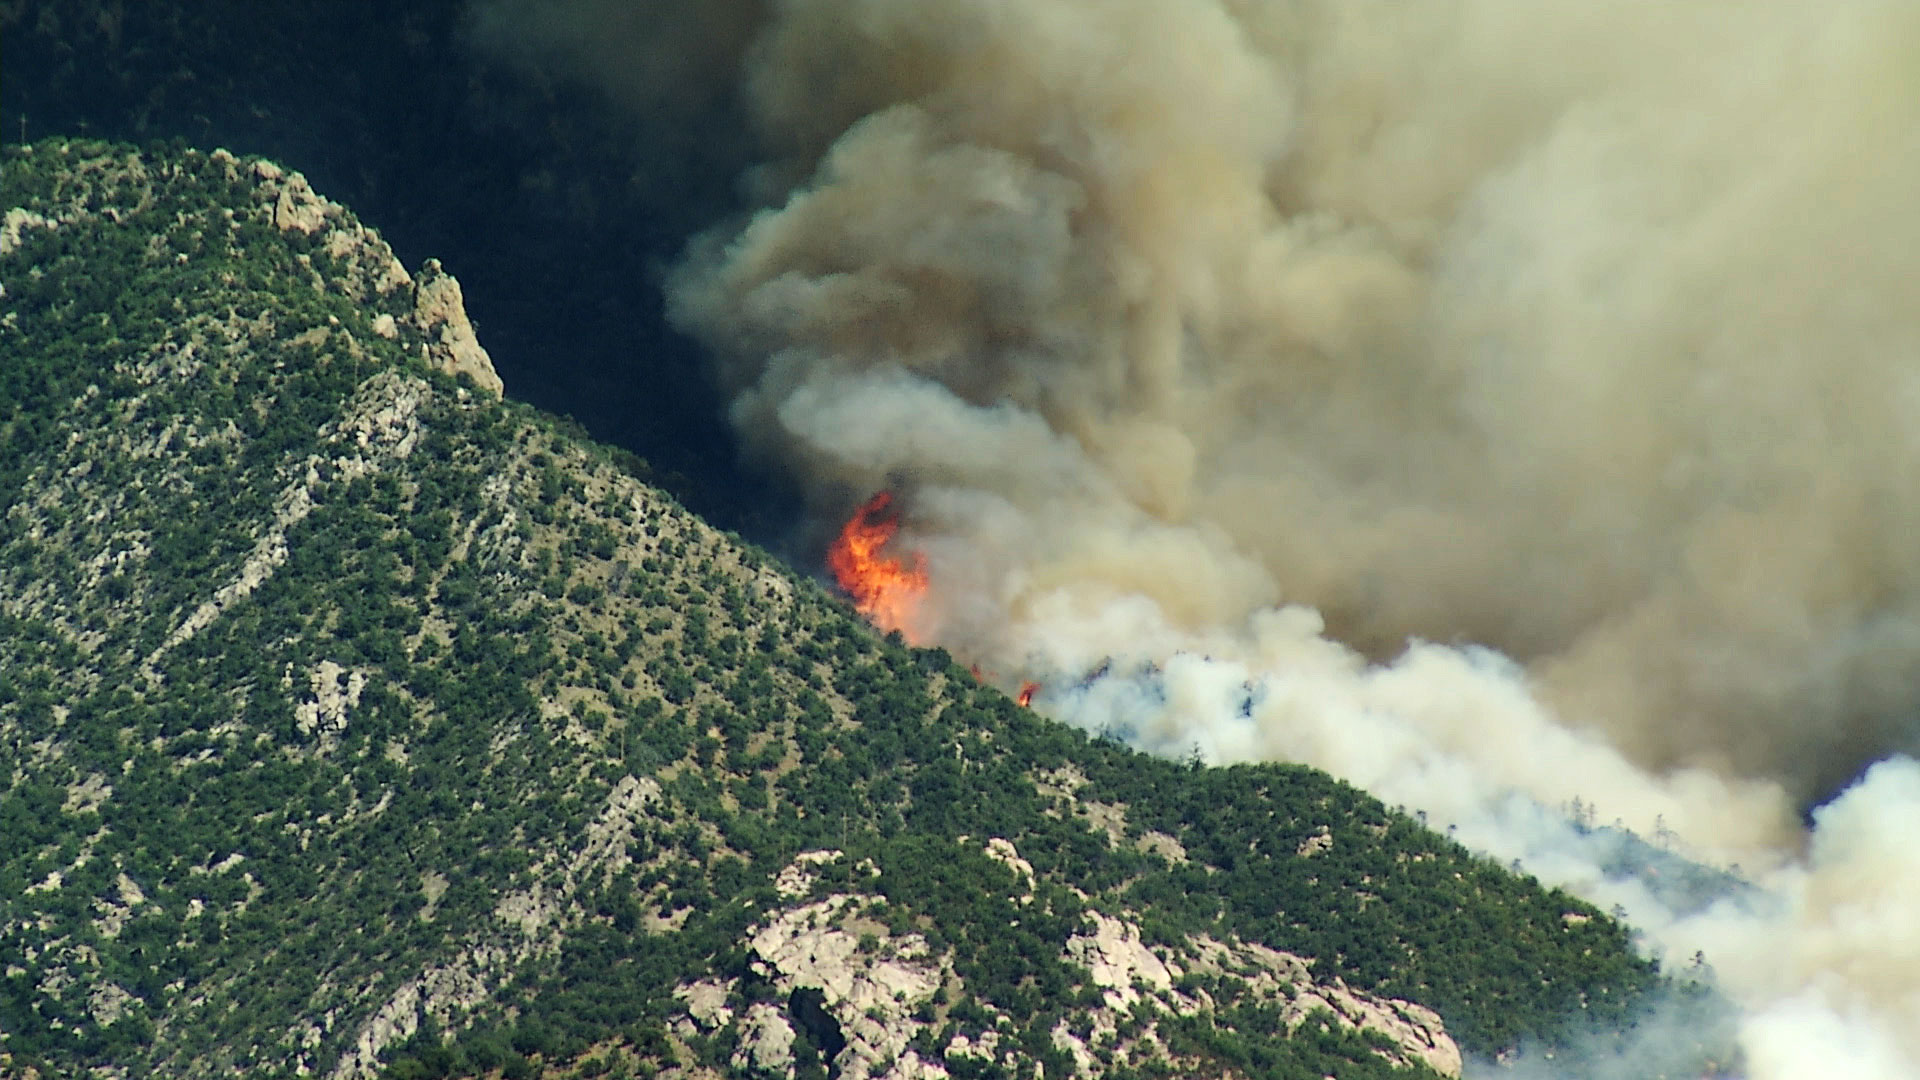 The Bighorn Fire burns in the Santa Catalina Mountains on June 16, 2020.